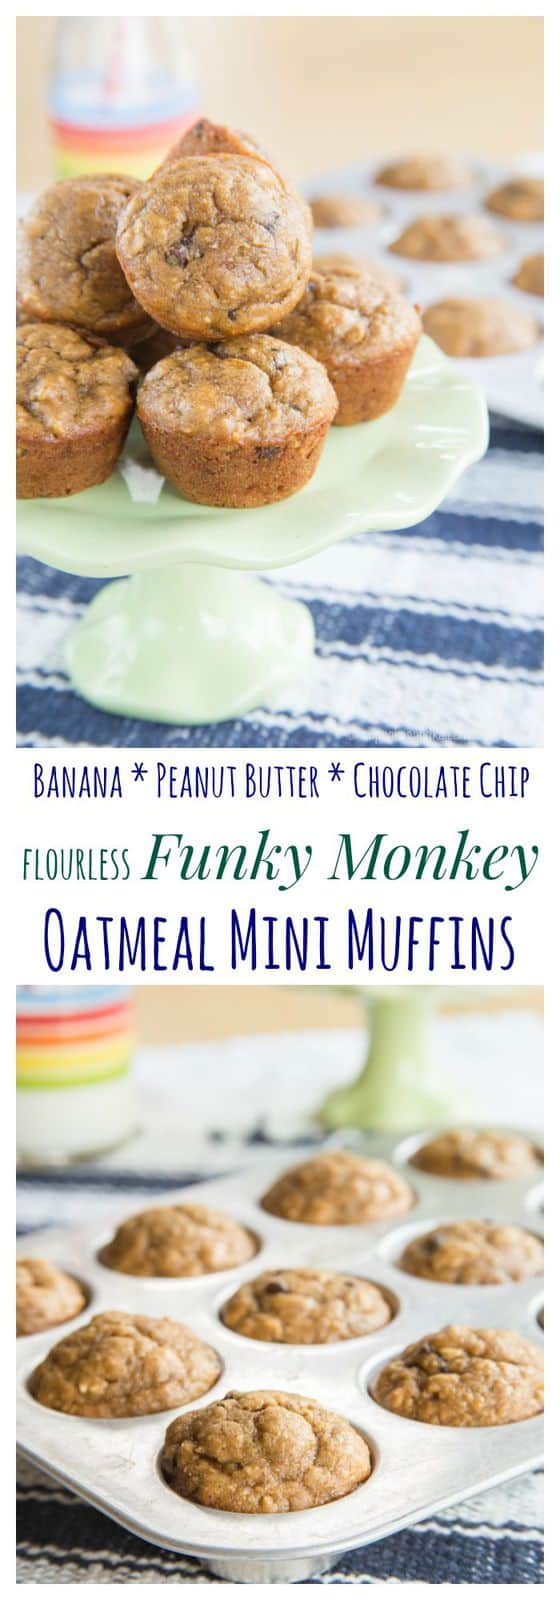 Flourless Funky Monkey Oatmeal Mini Muffins - that favorite combination of bananas, peanut butter, and chocolate in a healthy breakfast or snack | cupcakesandkalechips.com | gluten free and dairy free options